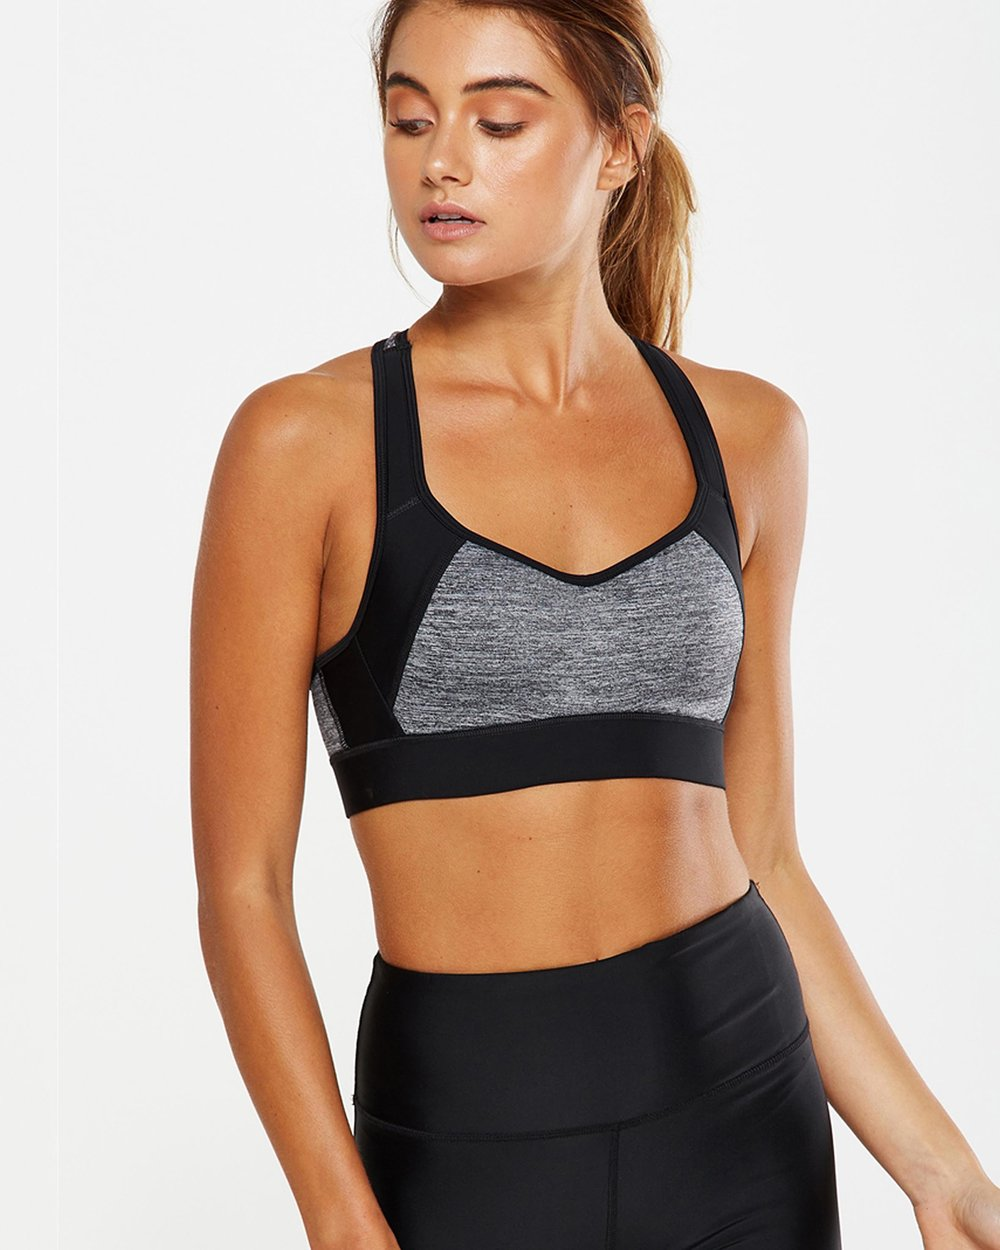 da02f7cc235 High Impact Sports Bra by Cotton On Body Active Online